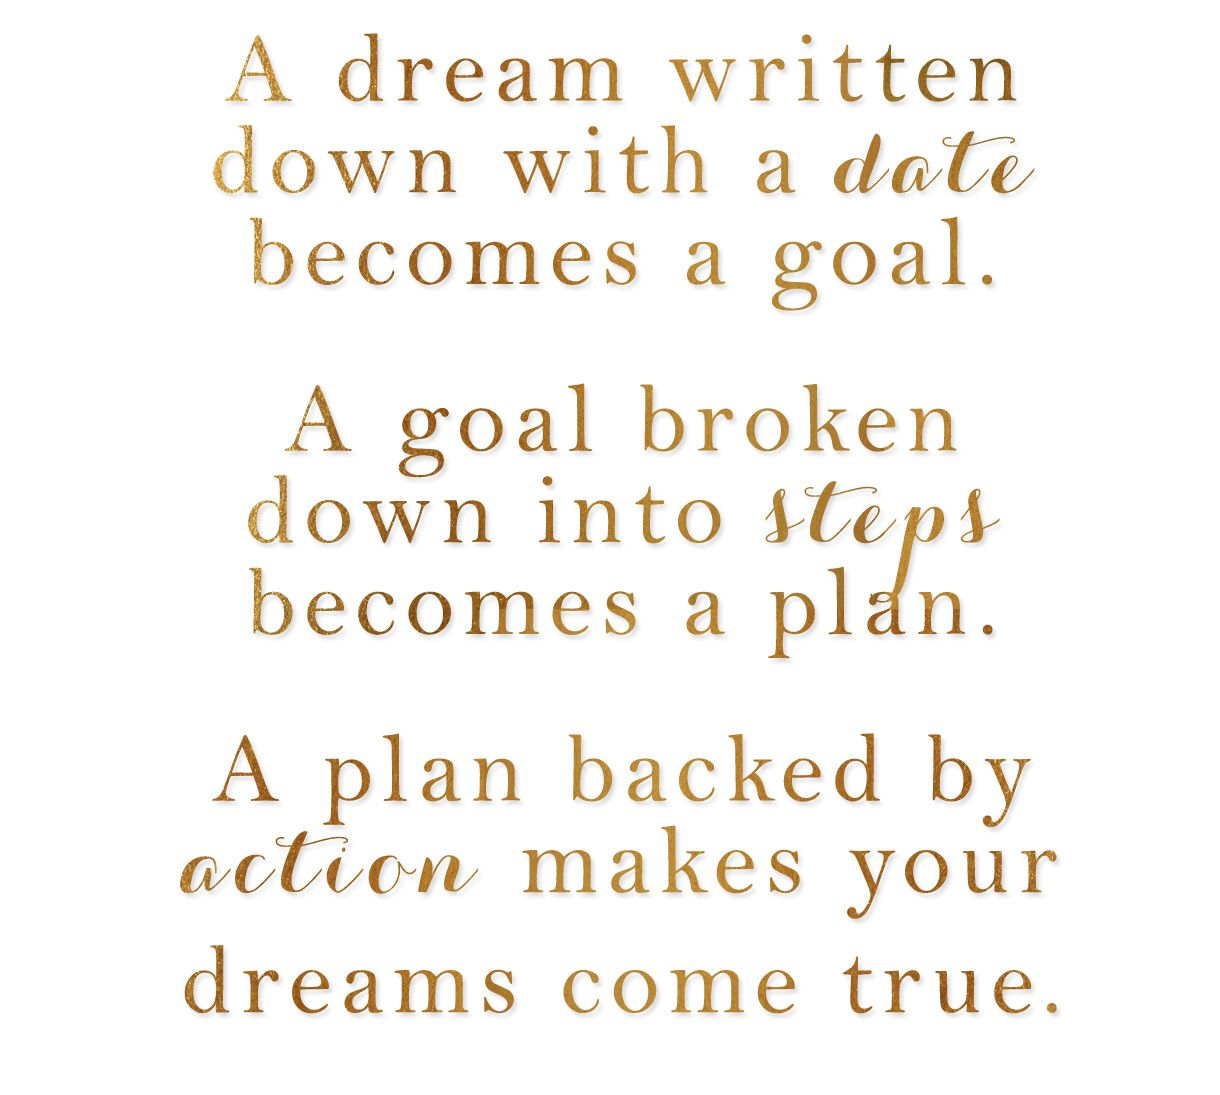 Quotes About Dreams And Love Dreams Come True Httpgo4Prophotosanewyouplan  Words